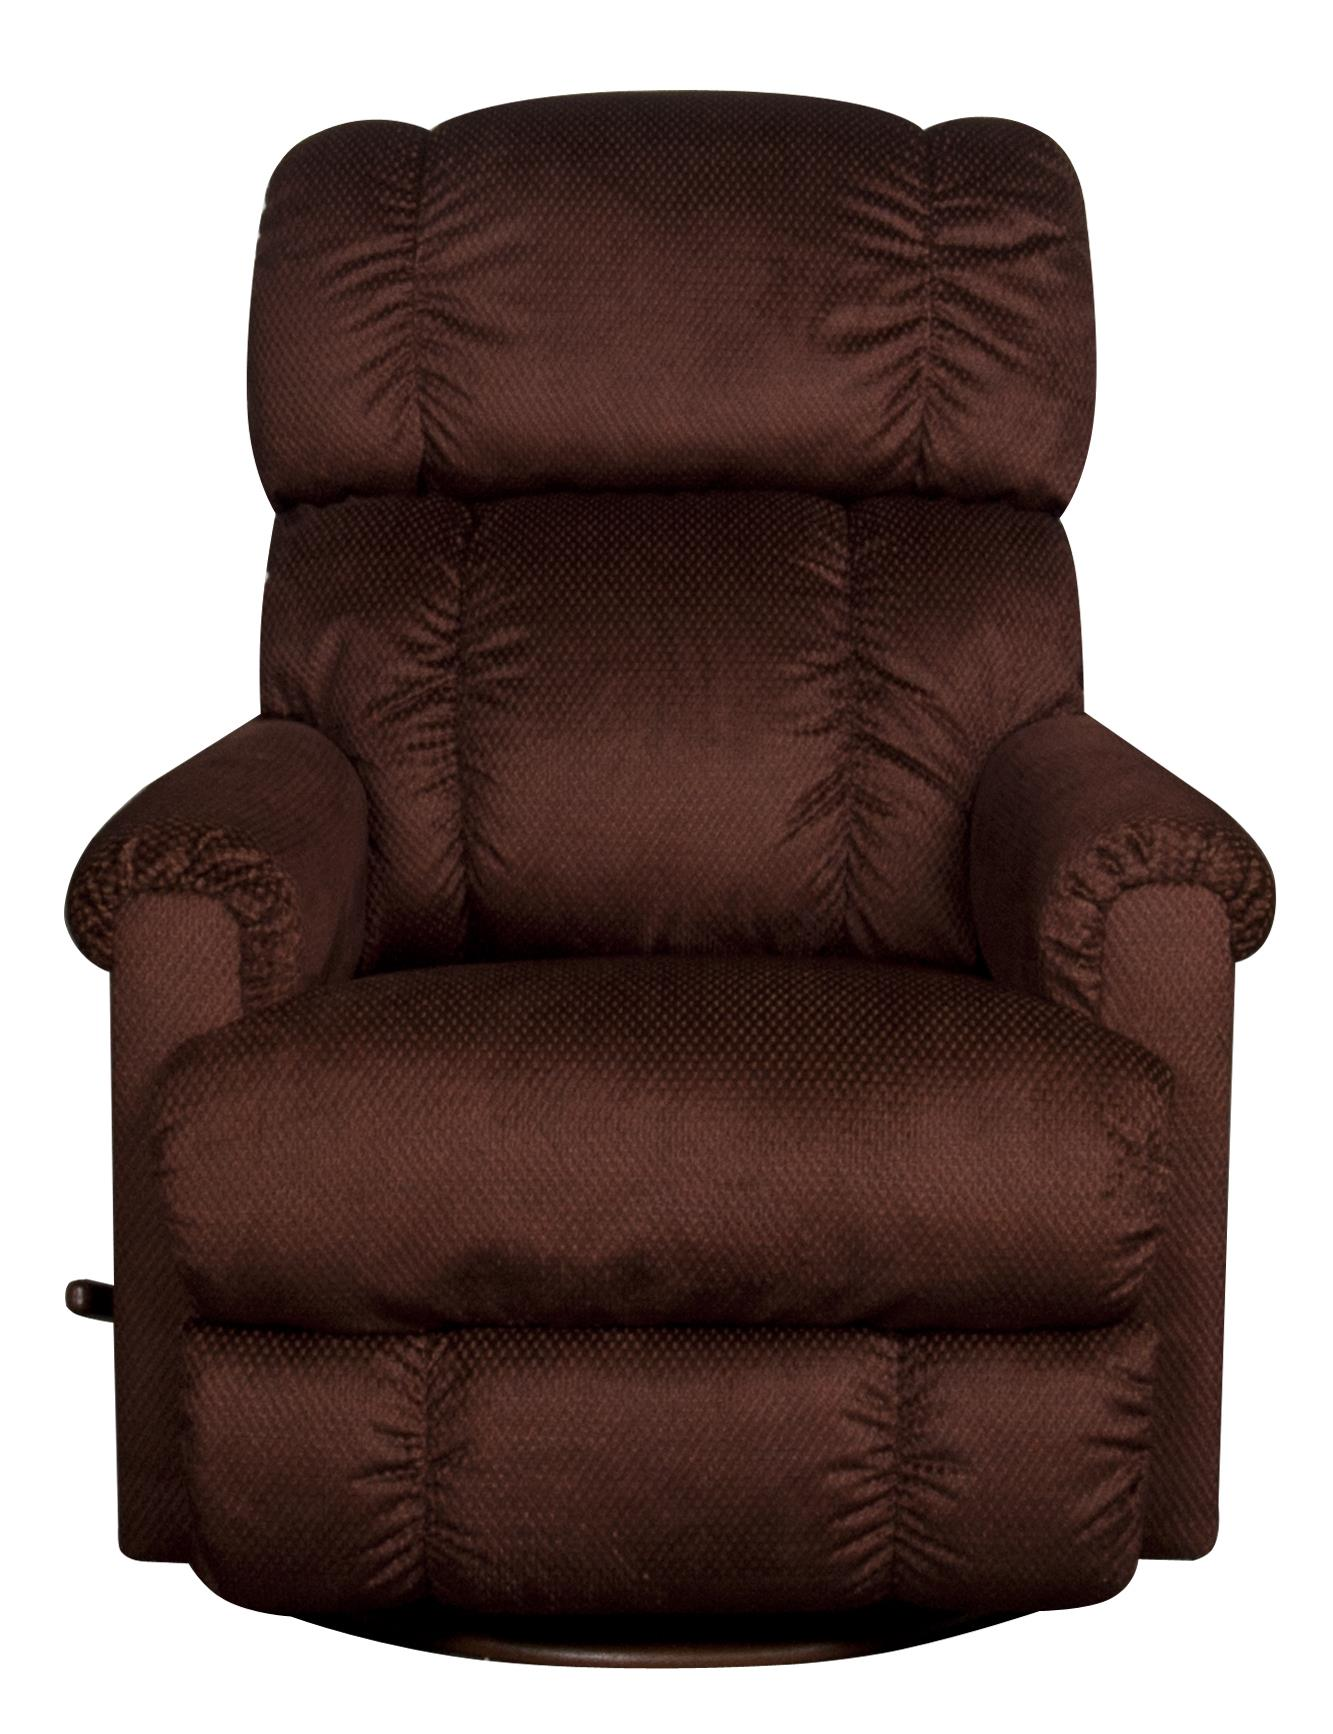 La-Z-Boy Pinnacle Pinnacle Swivel Glider Recliner - Item Number: 629831593